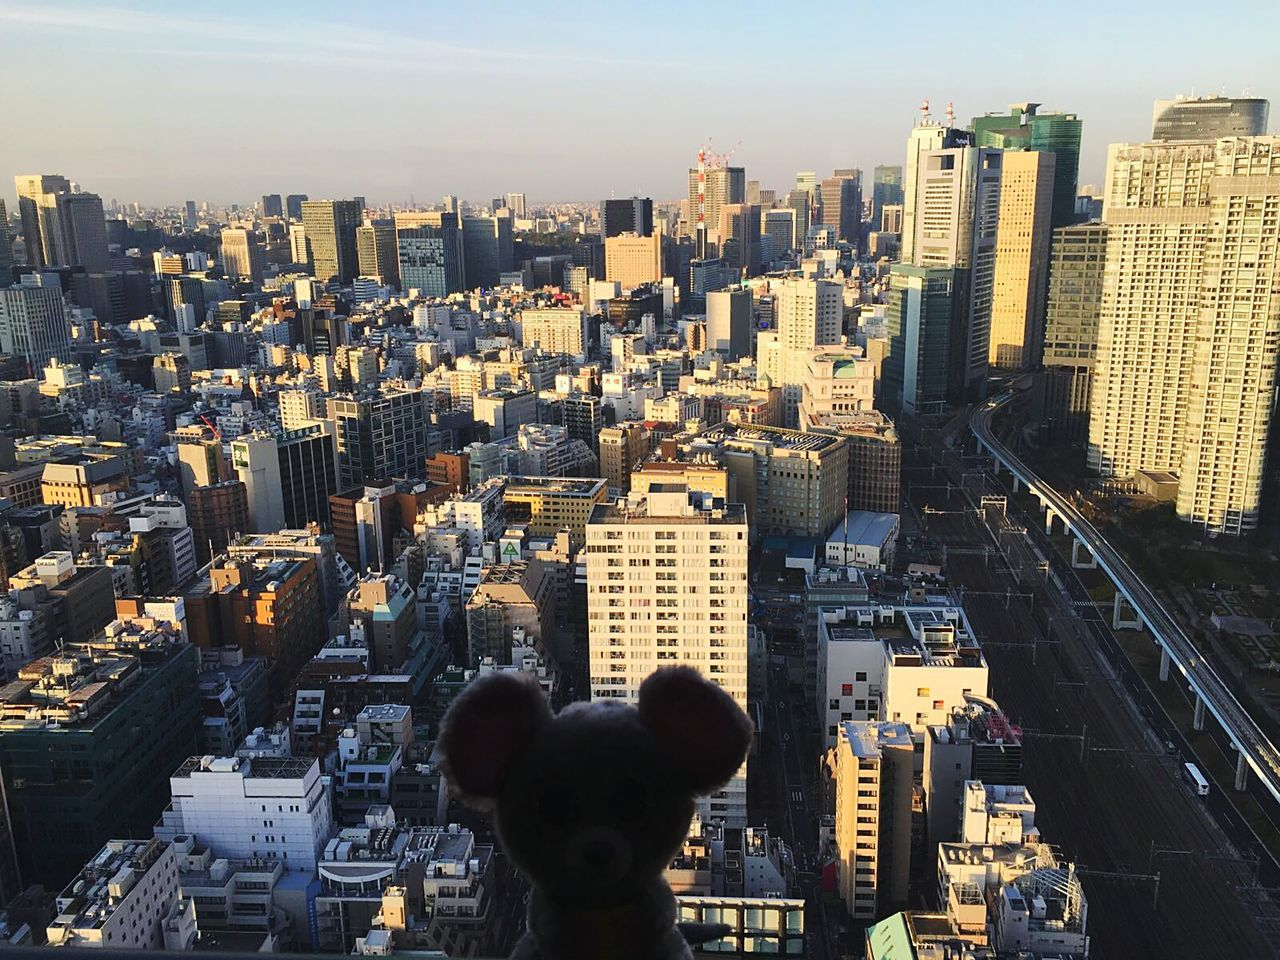 Mouse in Tokyo Mouse🐹 Tower Animals In The Wild Animal Themes cityscape City Skyscraper Architecture Business Finance And Industry Urban Skyline Travel Business Travel Destinations Downtown District Building Exterior Outdoors City Life Sky Office Building Exterior People Day Uniqueness Adapted To The City EyeEmNewHere Lieblingsteil Miles Away Flying High